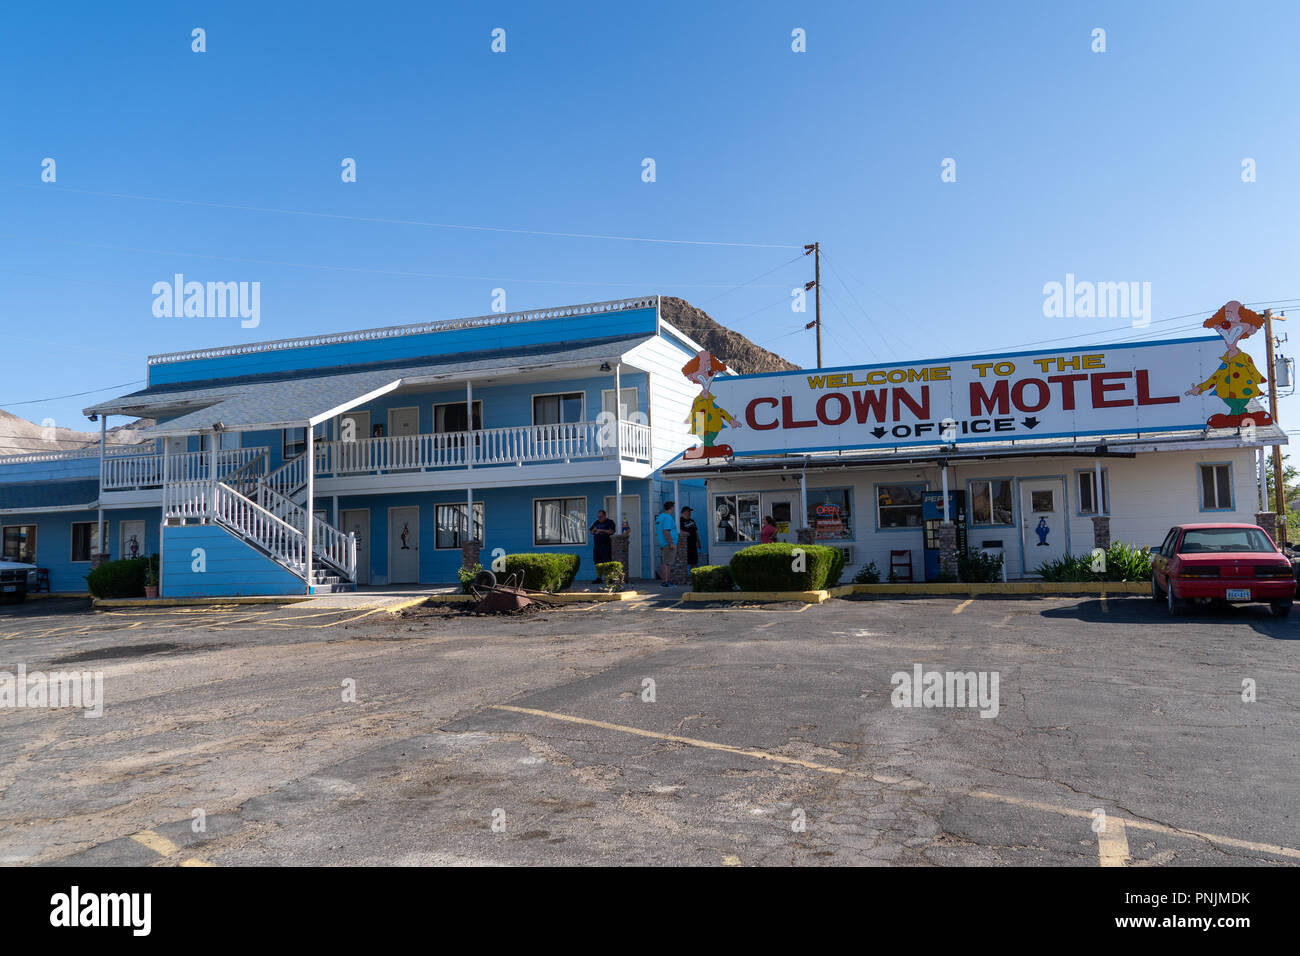 Clown Motel sign in Tonopah Nevada, is a kitschy roadside attraction and is said to be haunted - Stock Image